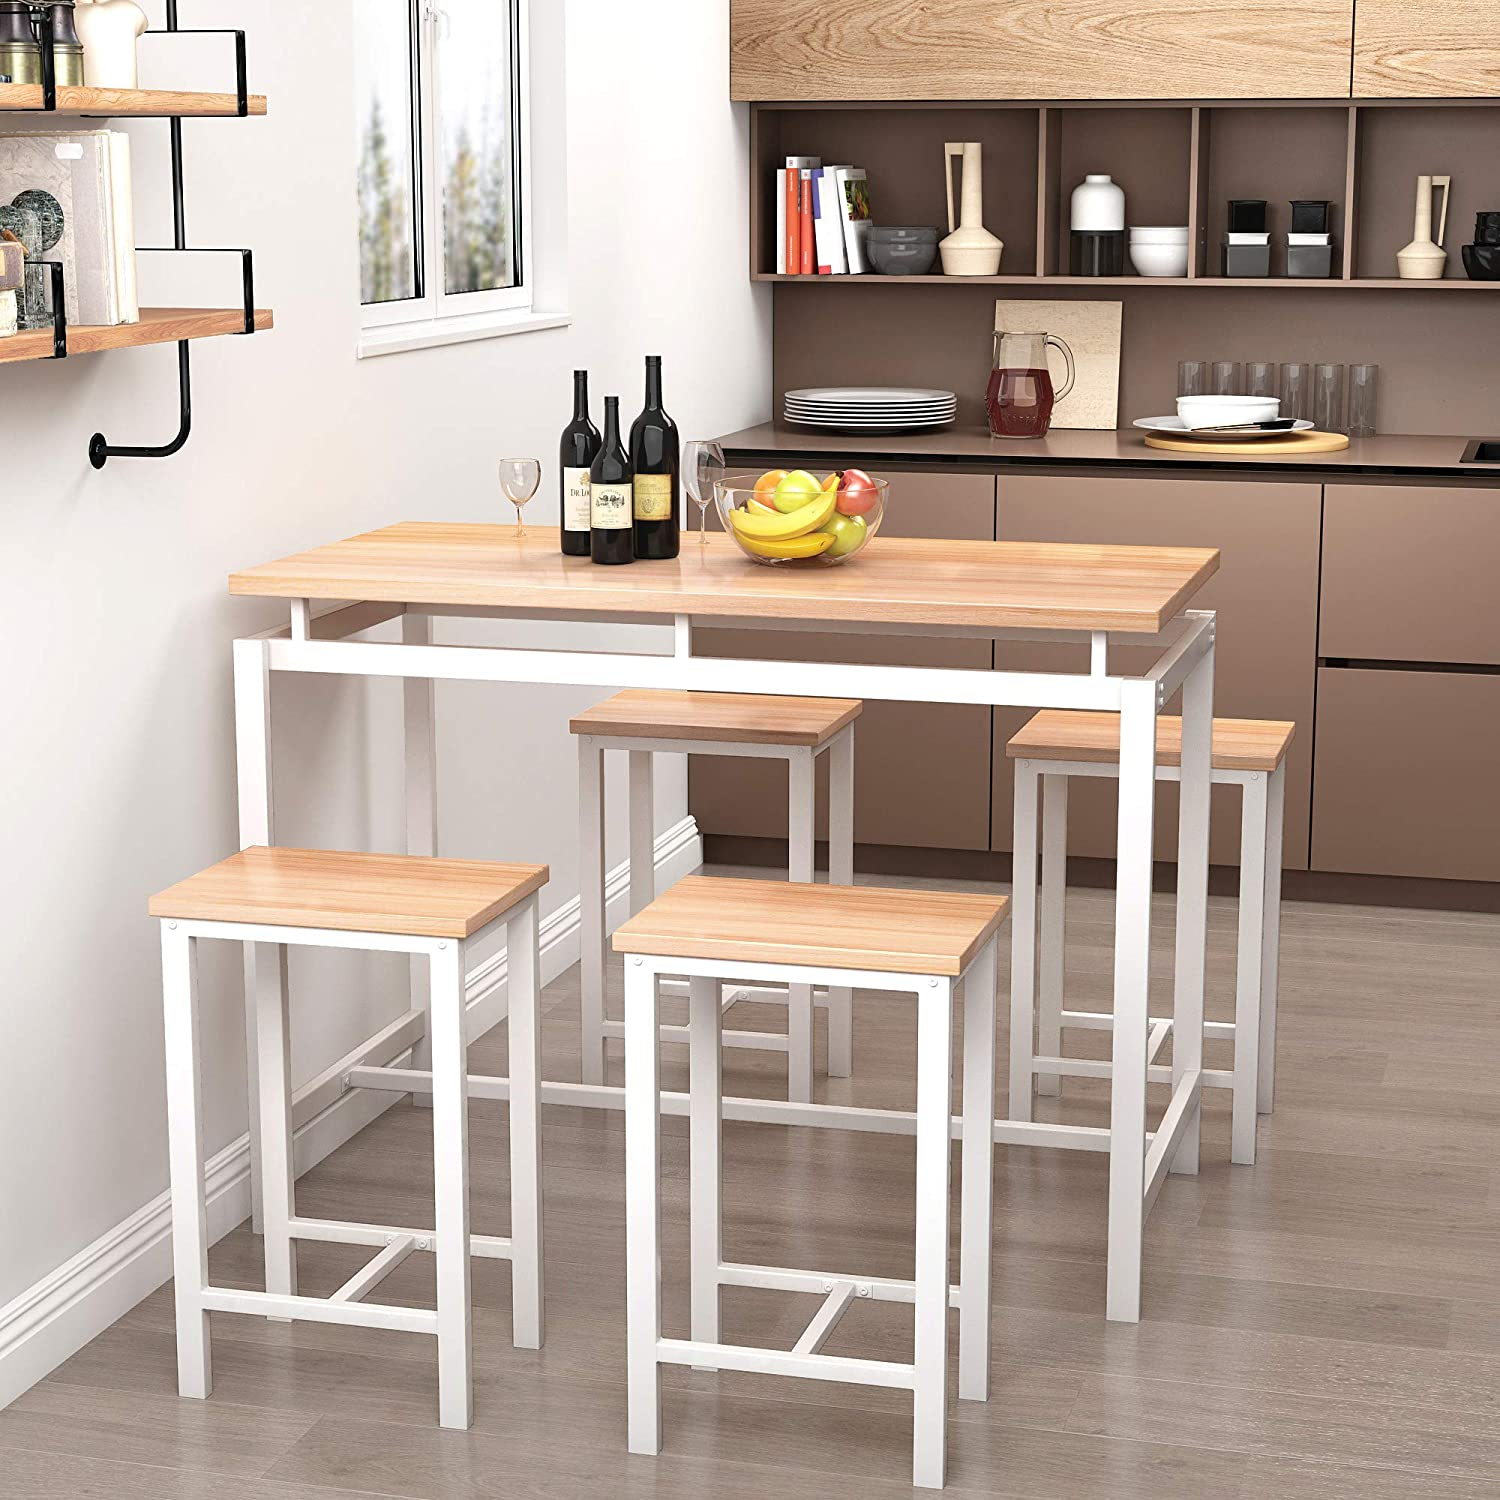 Recaceik 9 PCS Dining Table Set, Modern Kitchen Table and Chairs for 9,  Wood Pub Bar Table Set Perfect for Breakfast Nook, Small Space Living Room